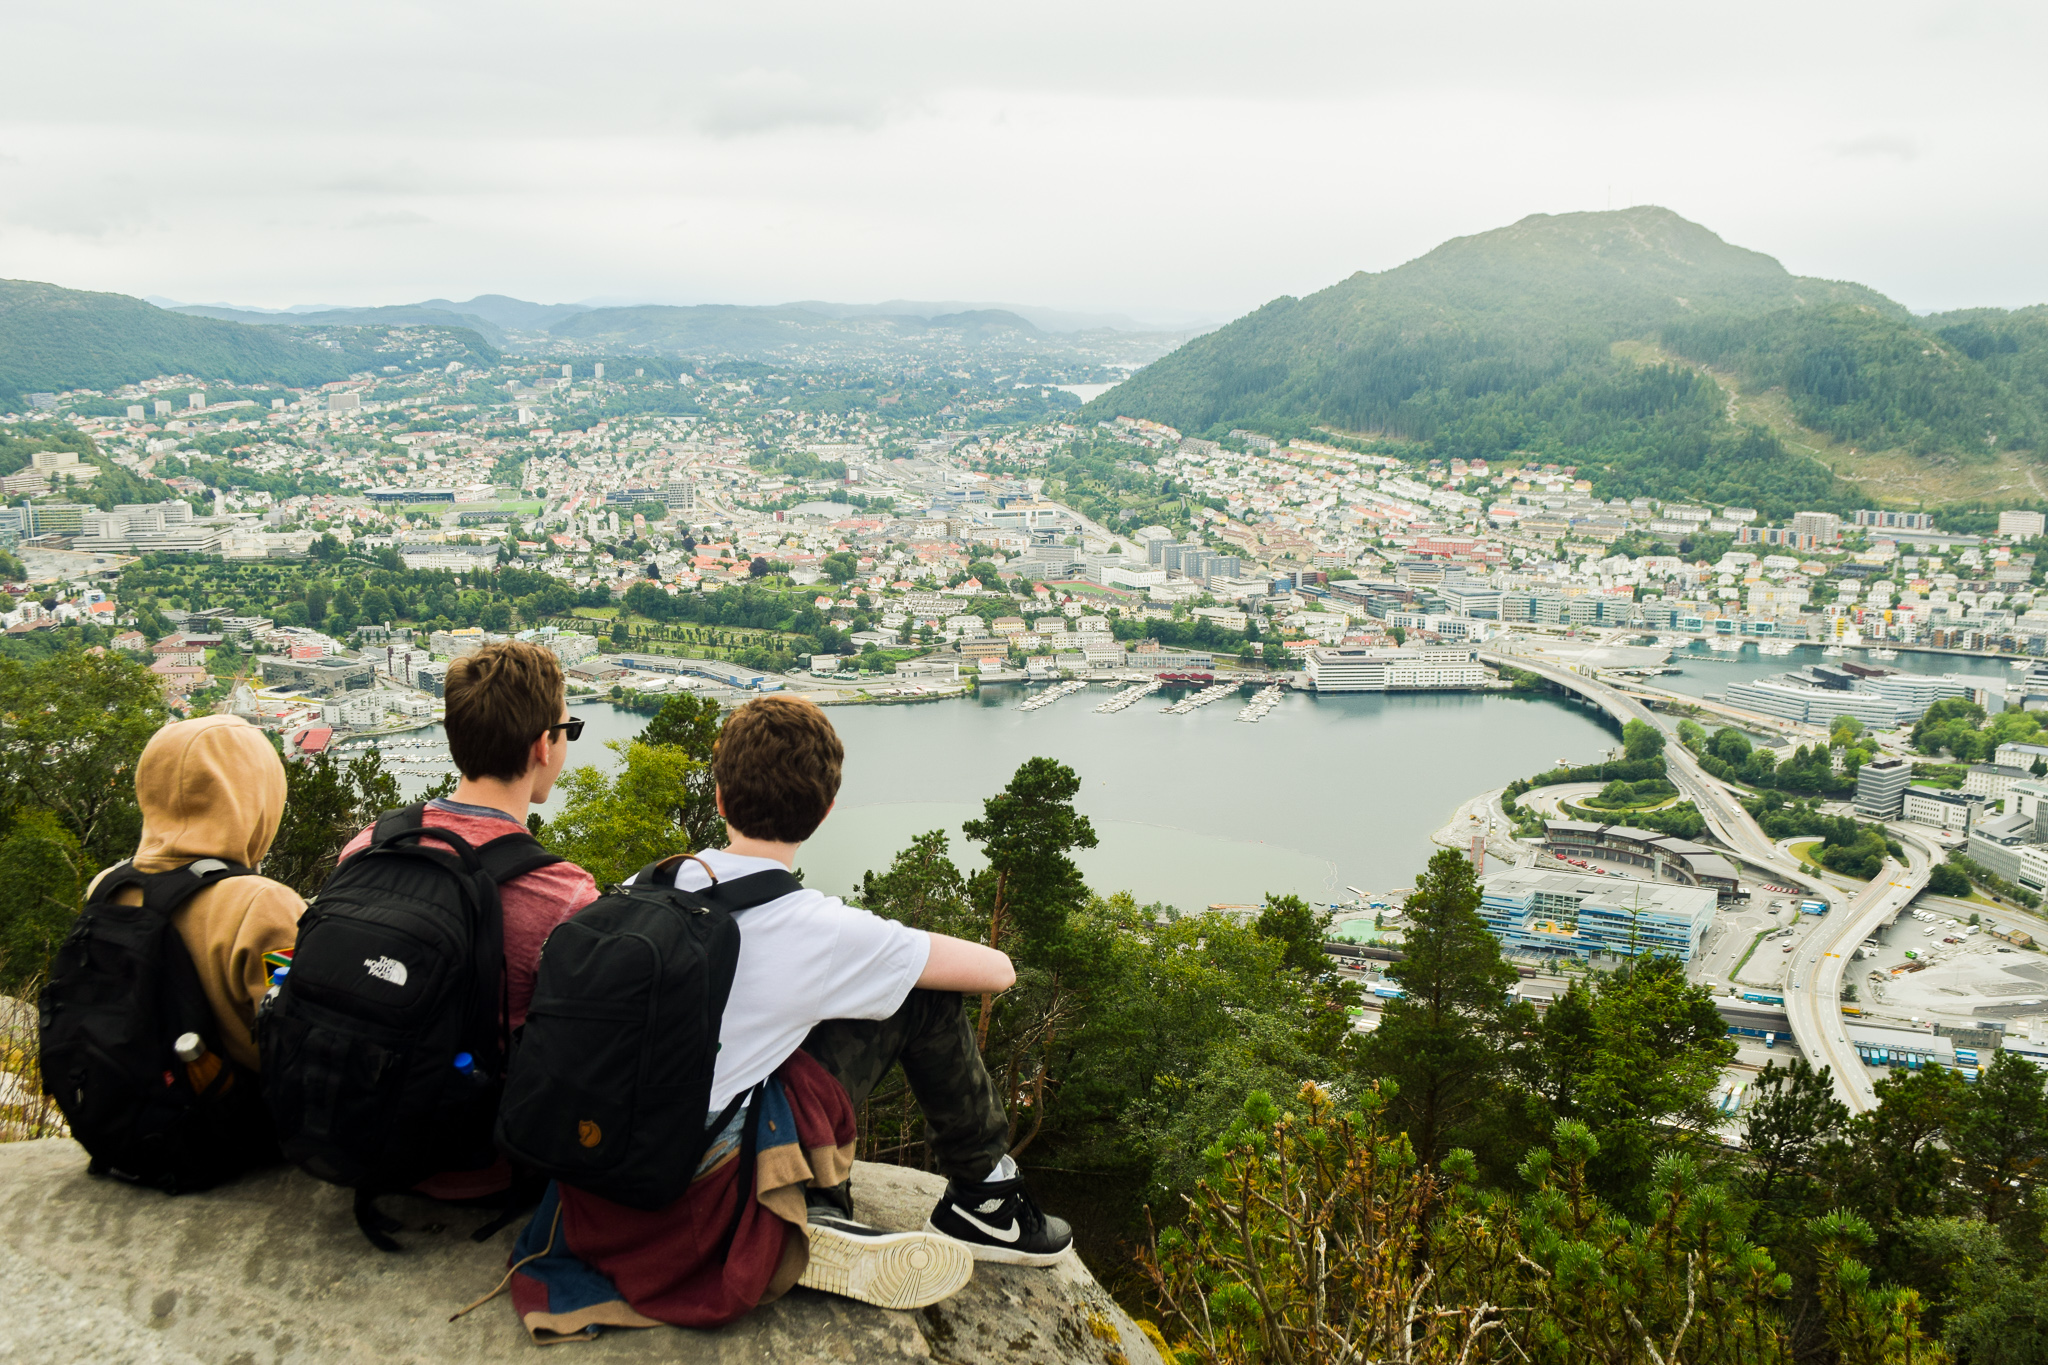 Summer Program - Group Travel | Travel For Teens: Ultimate Nordic Adventure - Scandinavia and Iceland